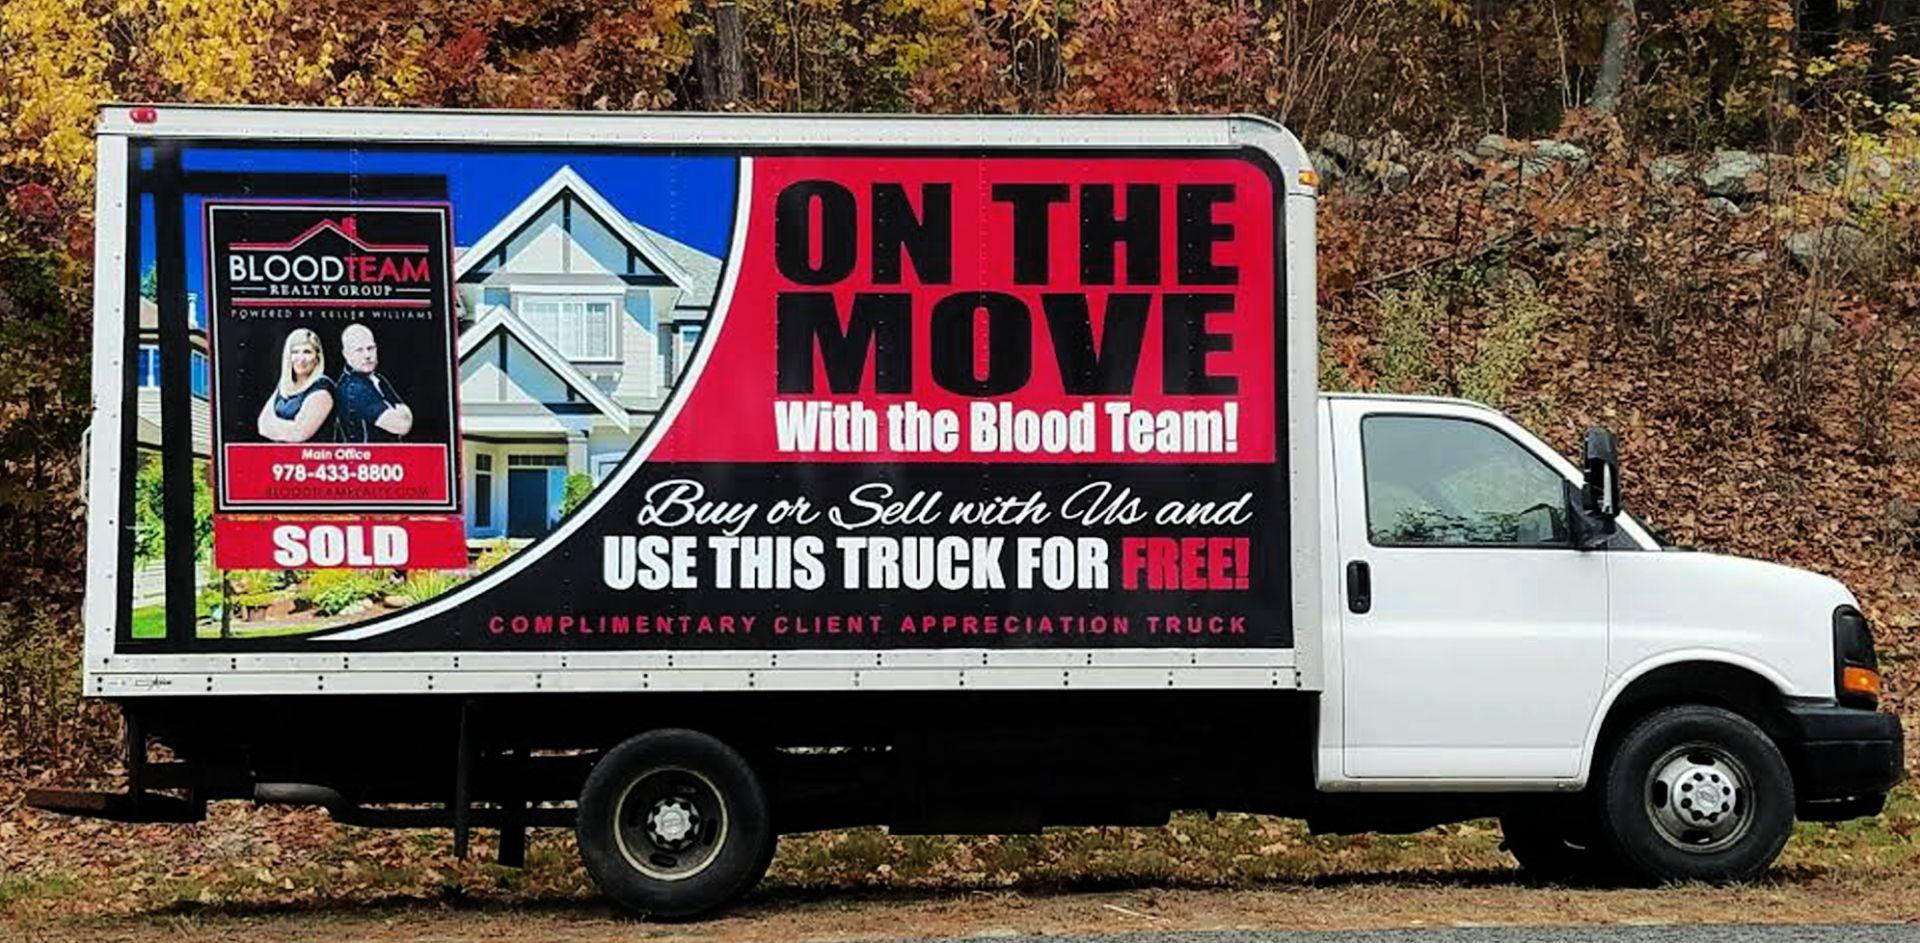 On the move with the Blood Team!